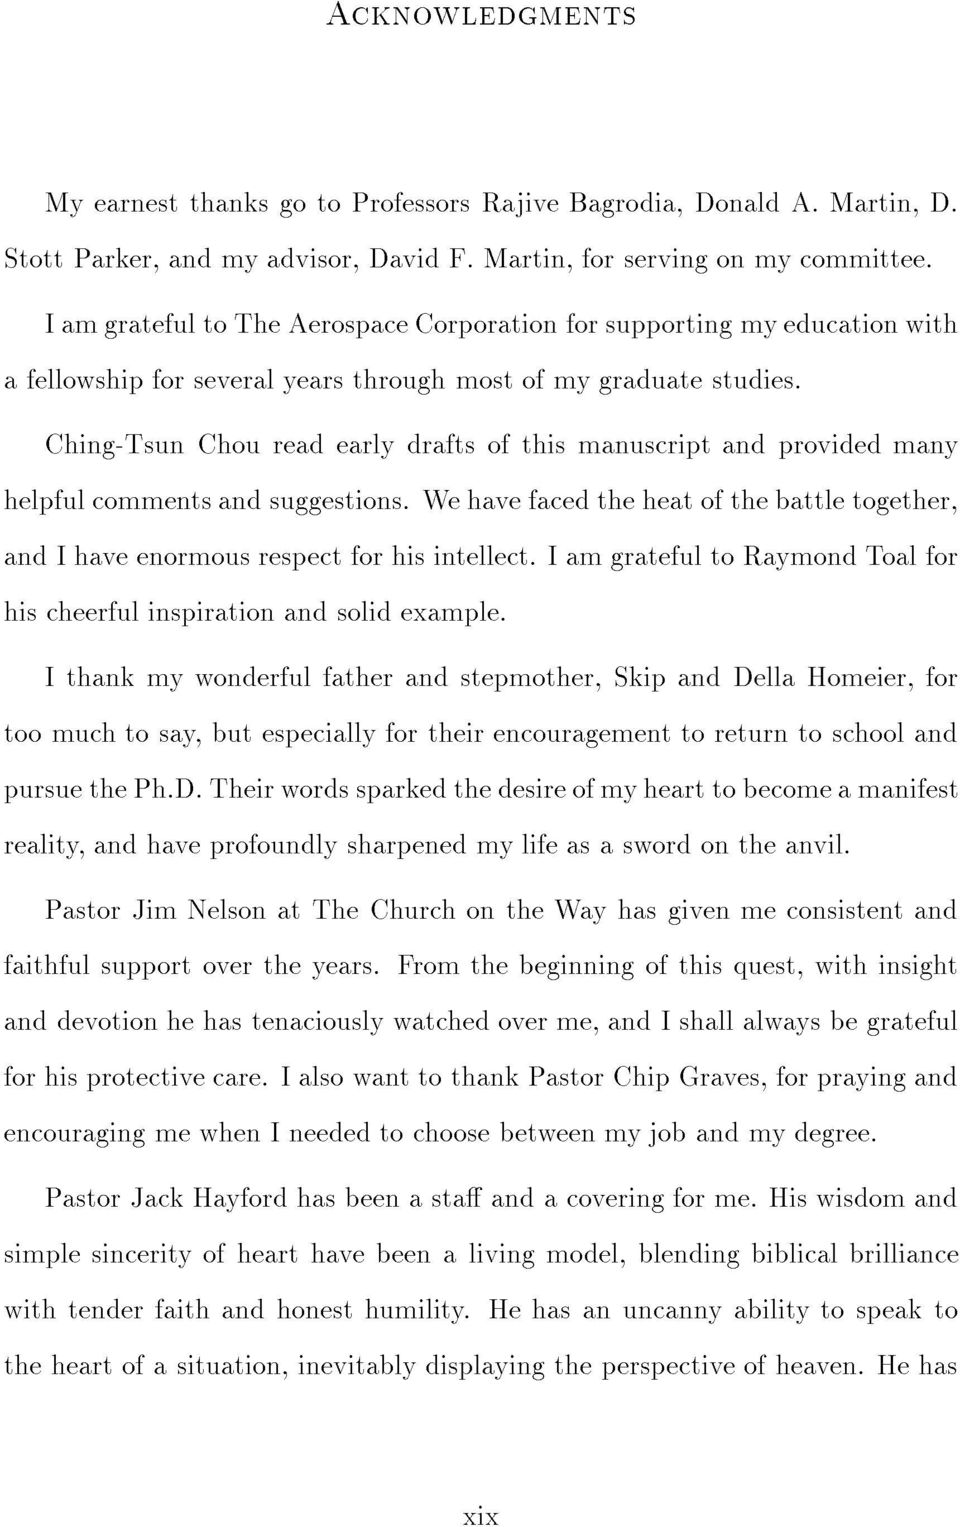 Ching-Tsun Chou read early drafts of this manuscript and provided many helpful comments and suggestions. We have faced the heat of the battle together, and I have enormous respect for his intellect.